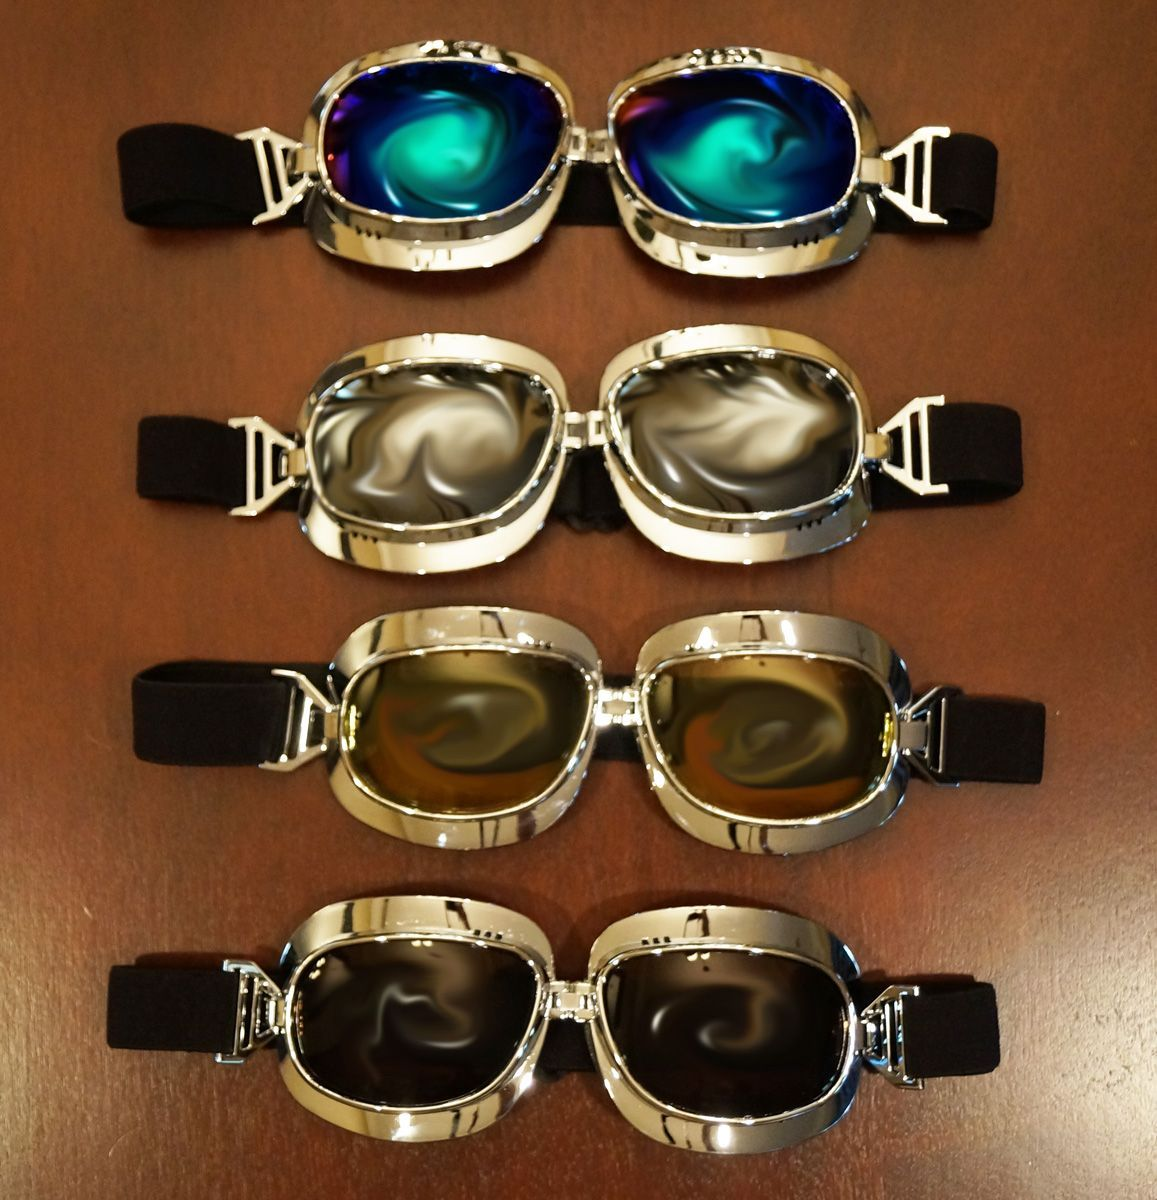 Optimum Aviator Goggles